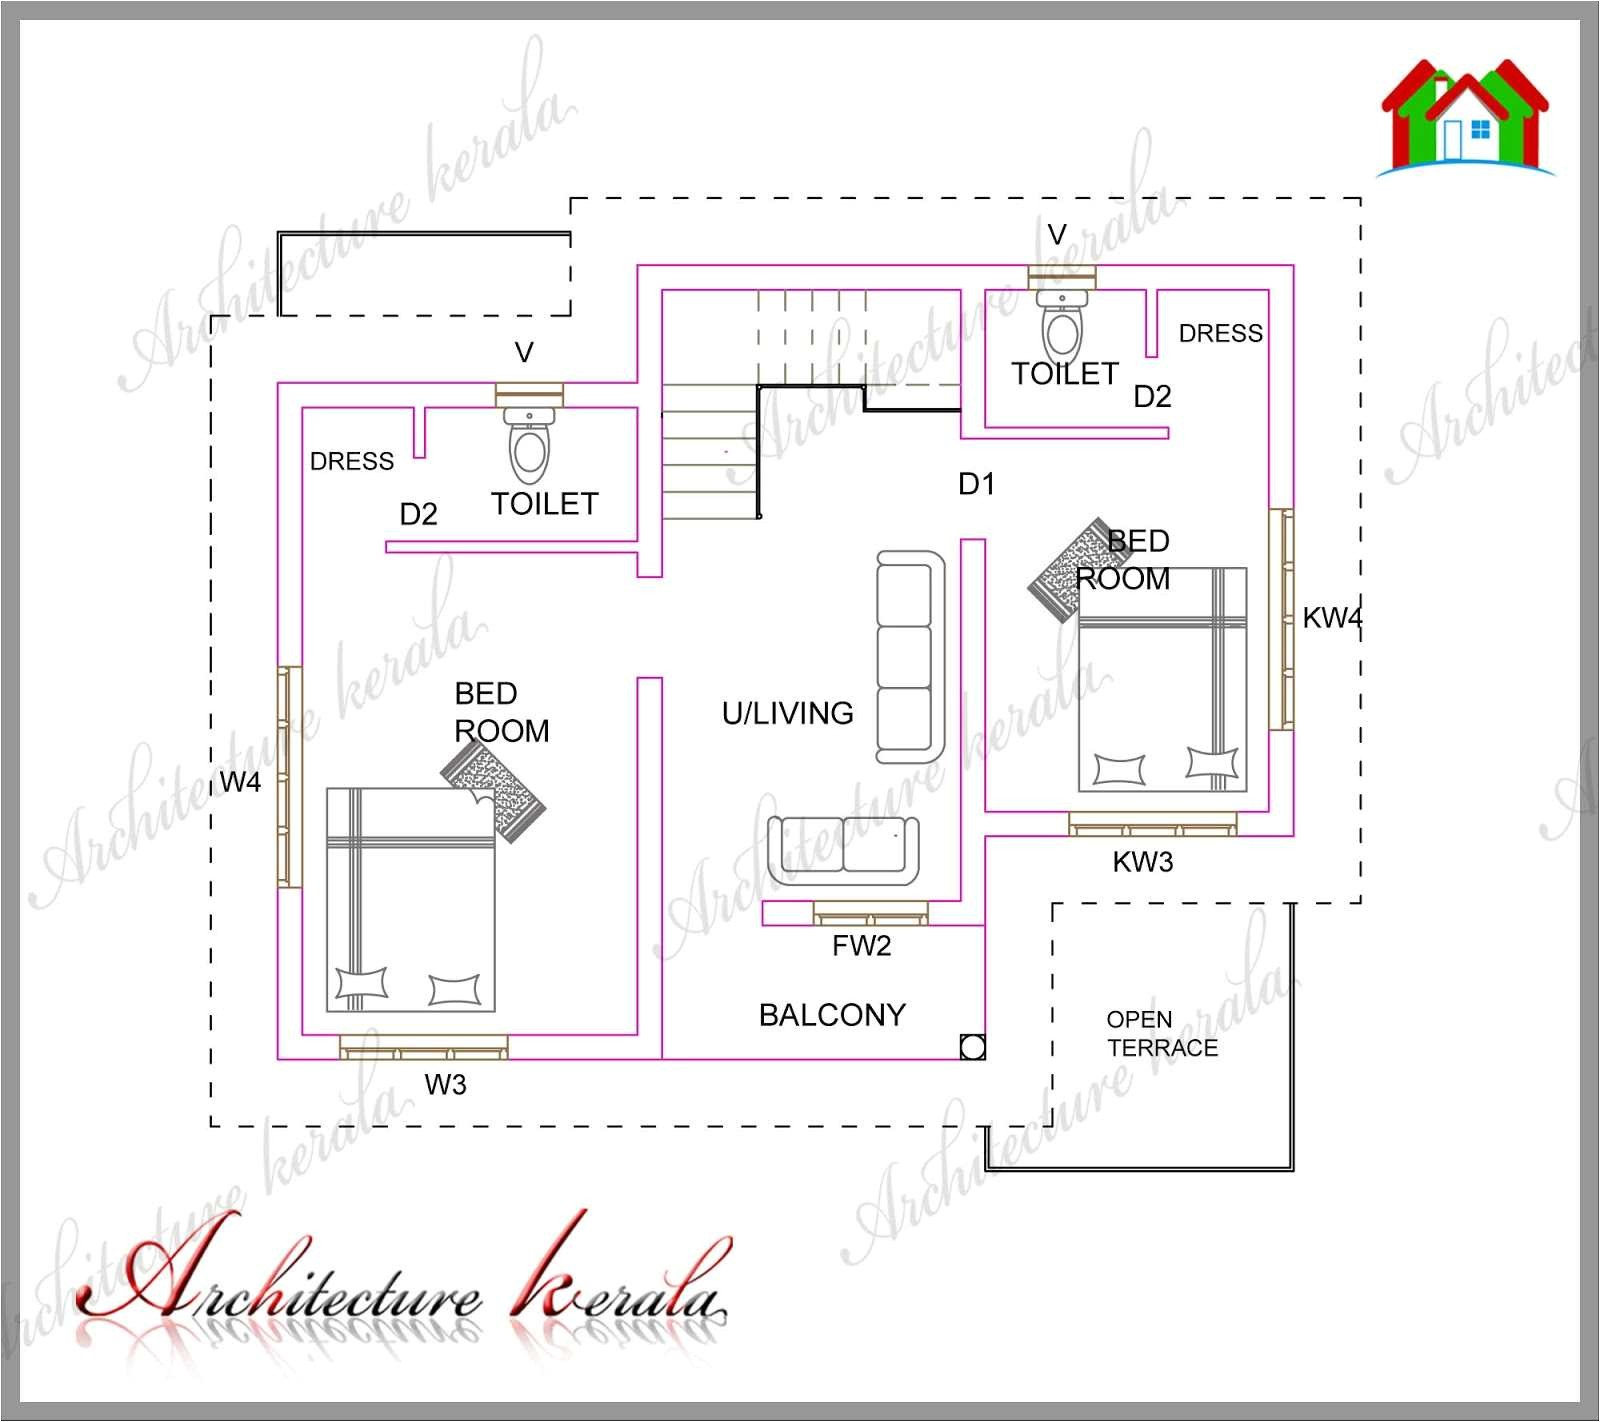 House Plans Less Than 800 Sq Ft House Plans Under 600 Square Feet or House Plans Less Than